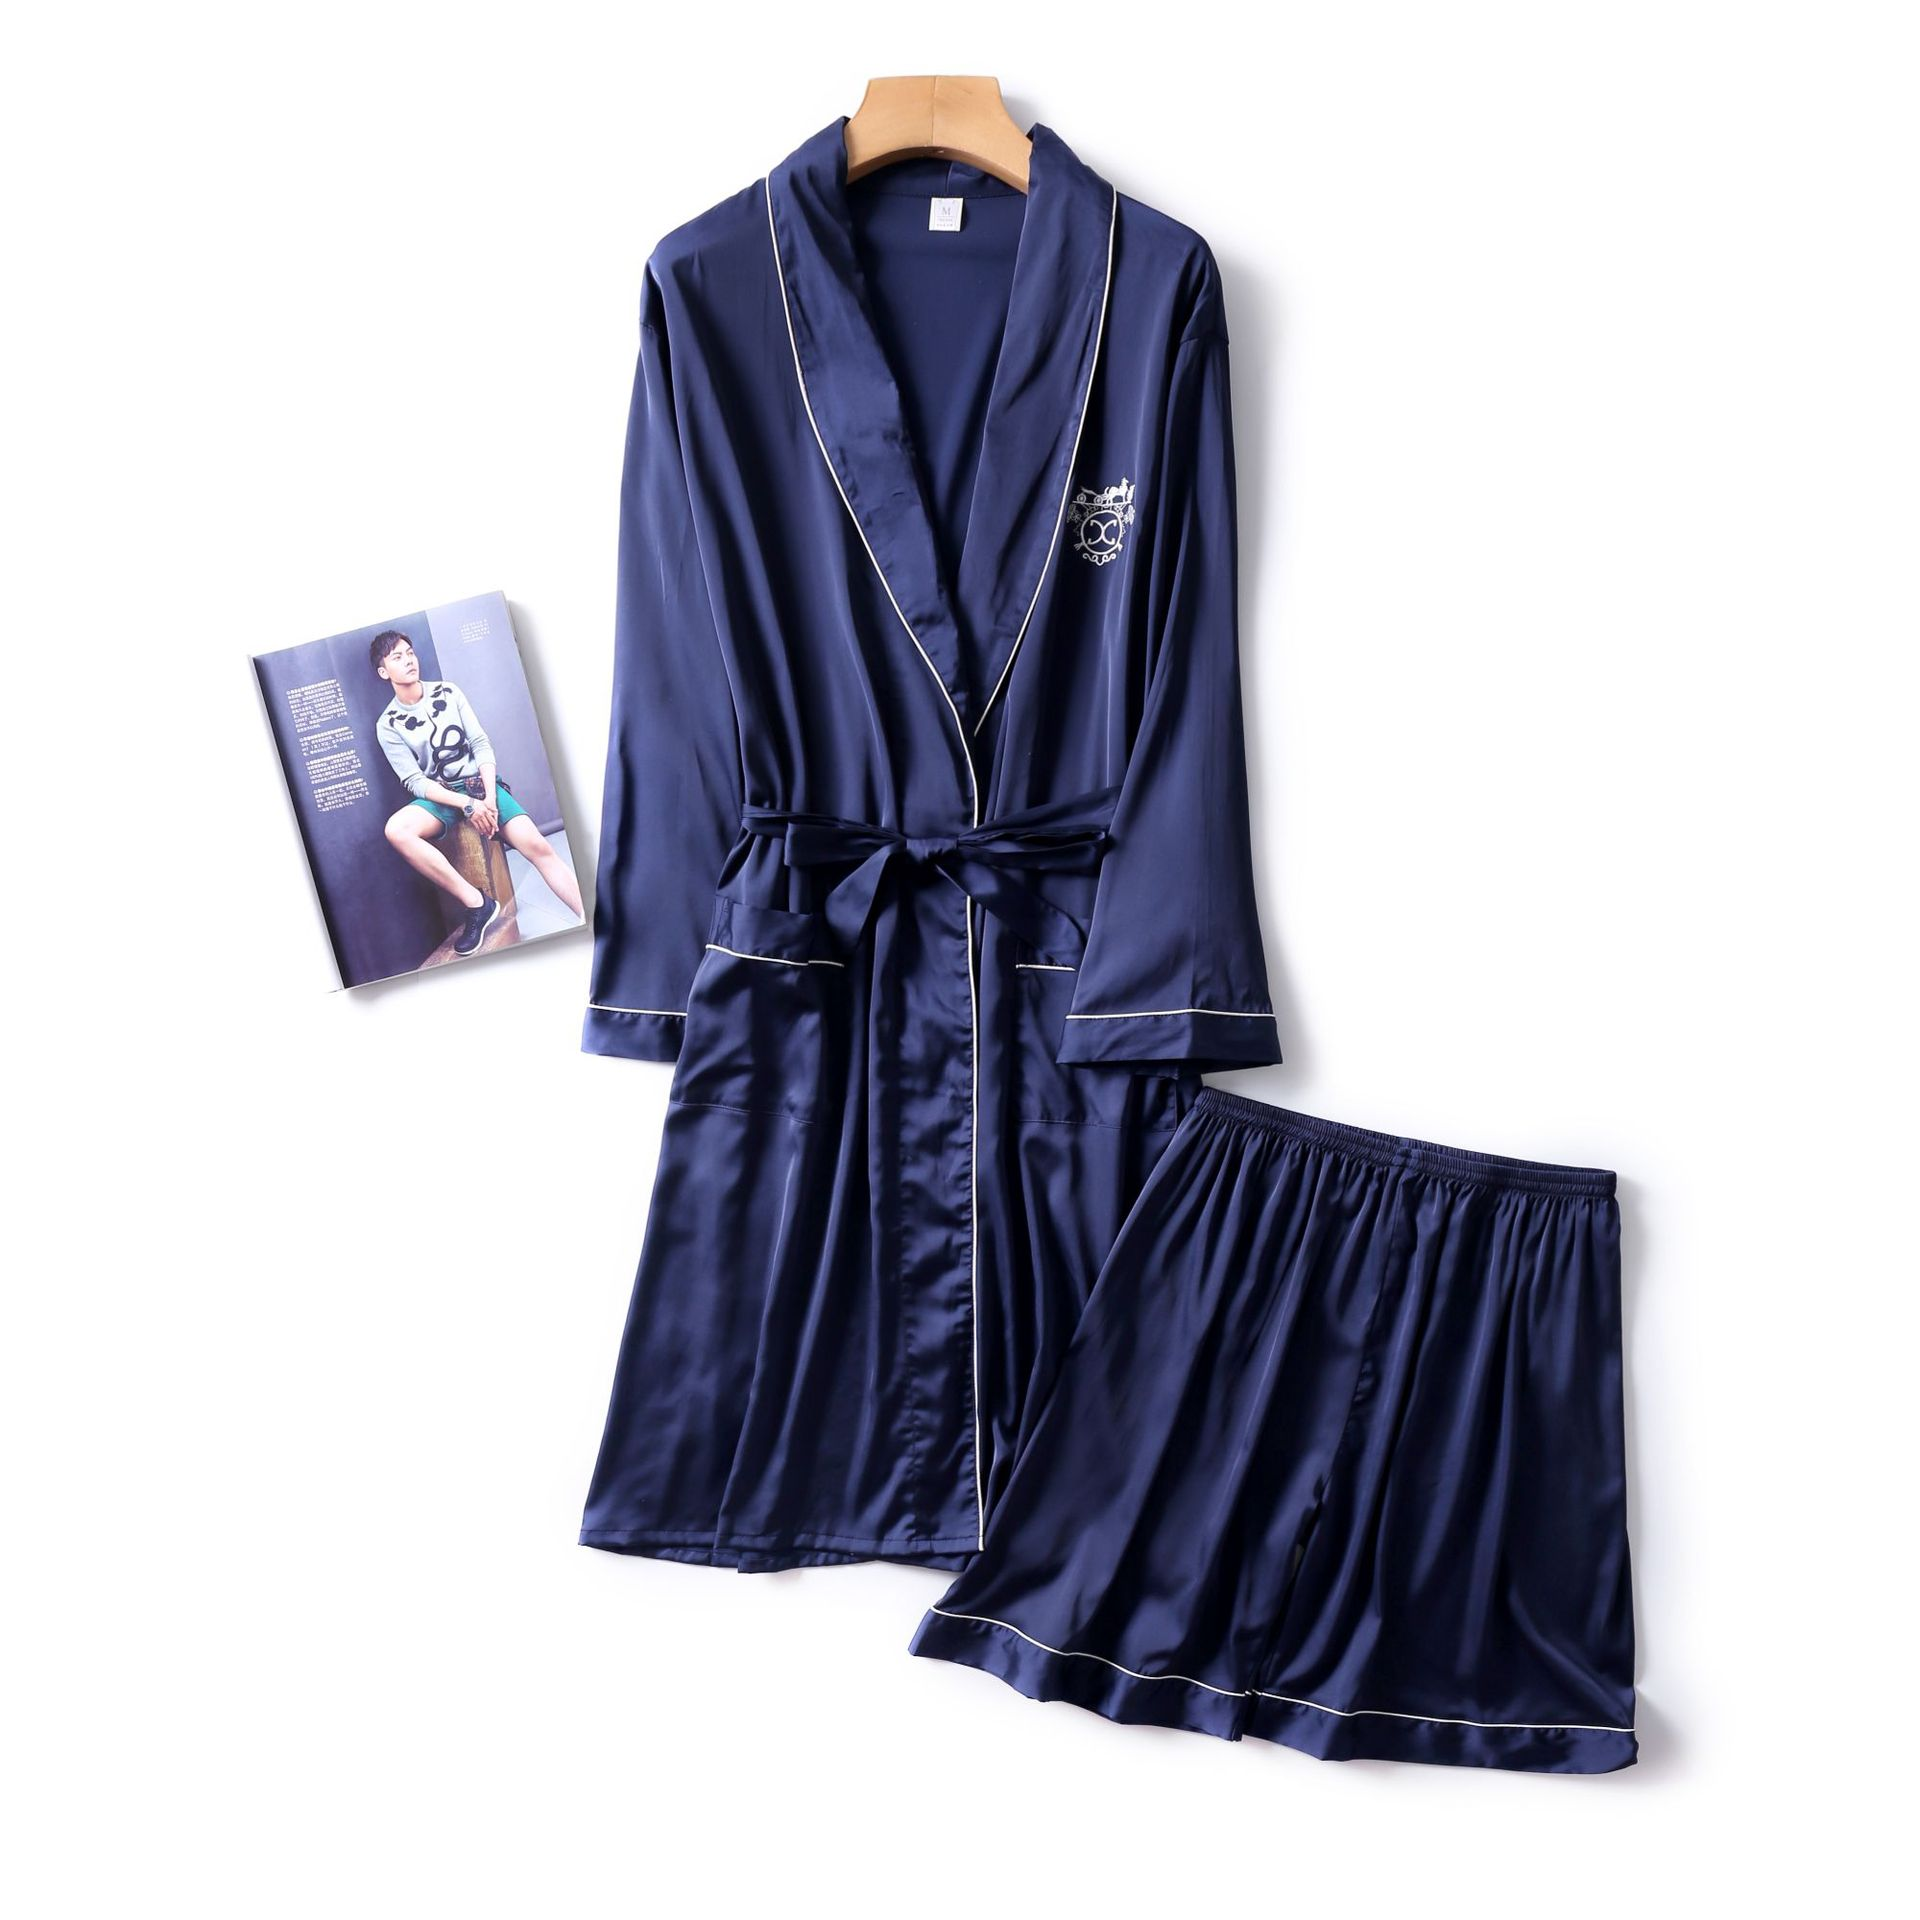 Navy Blue Mens Robe Short Pants Pajamas Suit Spring Two Piece Sleepwear Sets Casual Home Wear Nightwear Sleep Kimono Bath Gown